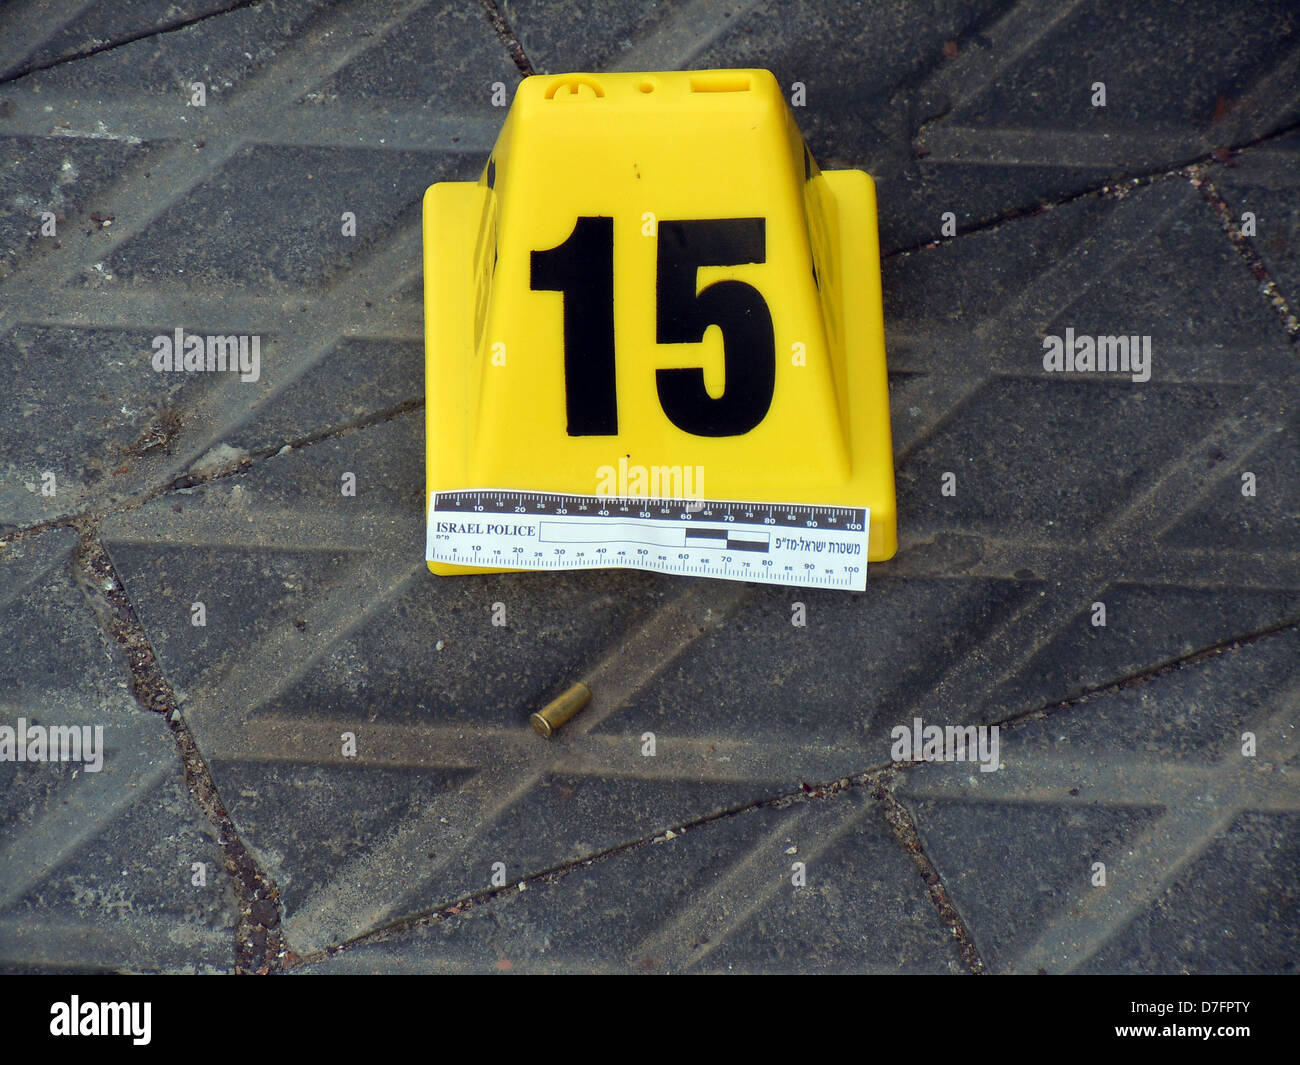 Police evidence marker next to a cartridge (Shell of a bullet) at a crime scene in Jaffa (Tel Aviv) on Feb. 24th - Stock Image